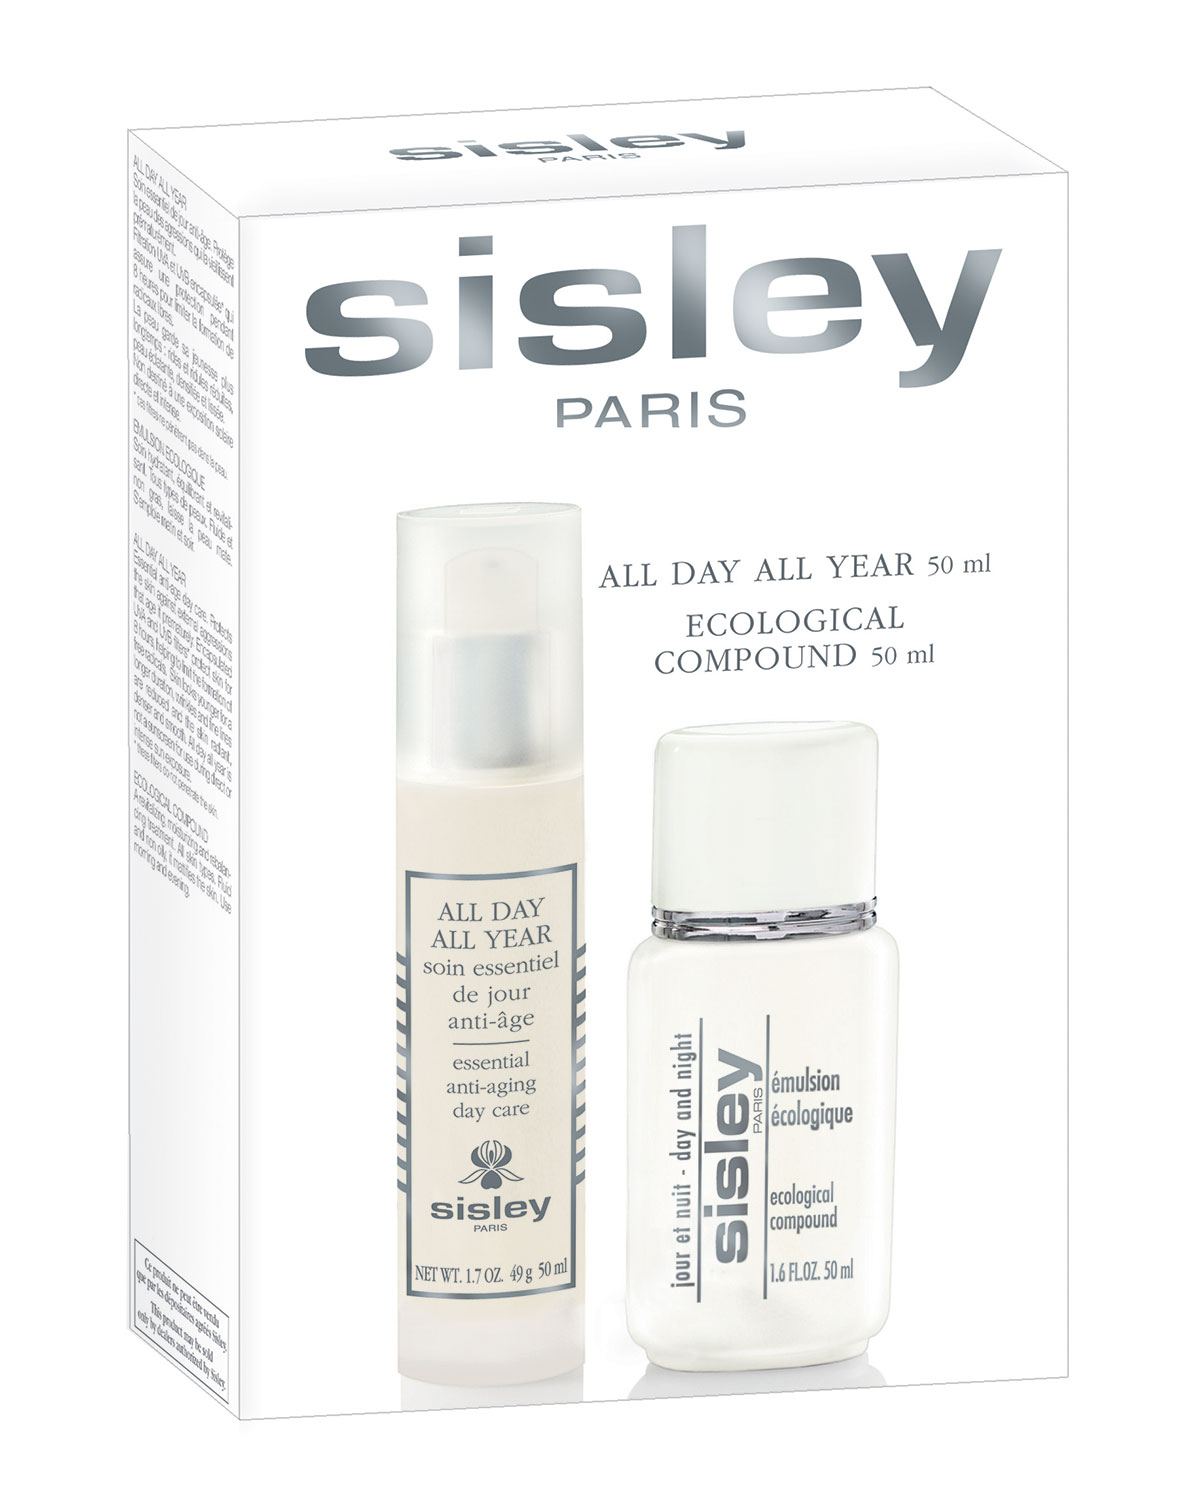 Limited Edition All Day All Year & Ecological Compound Travel Kit ($510 Value) - Sisley-Paris